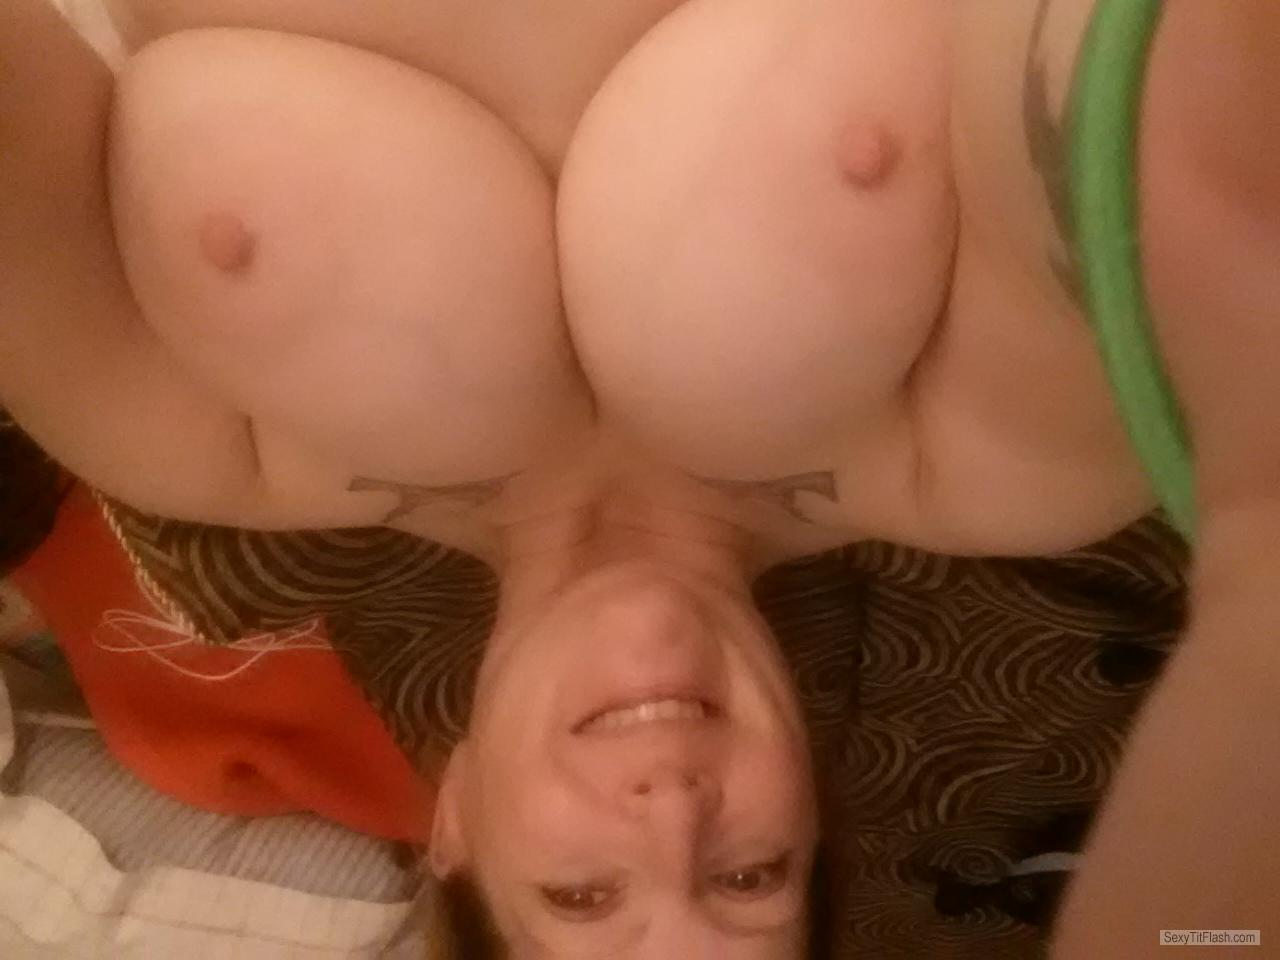 My Very big Tits Topless Selfie by Jenny Jenny